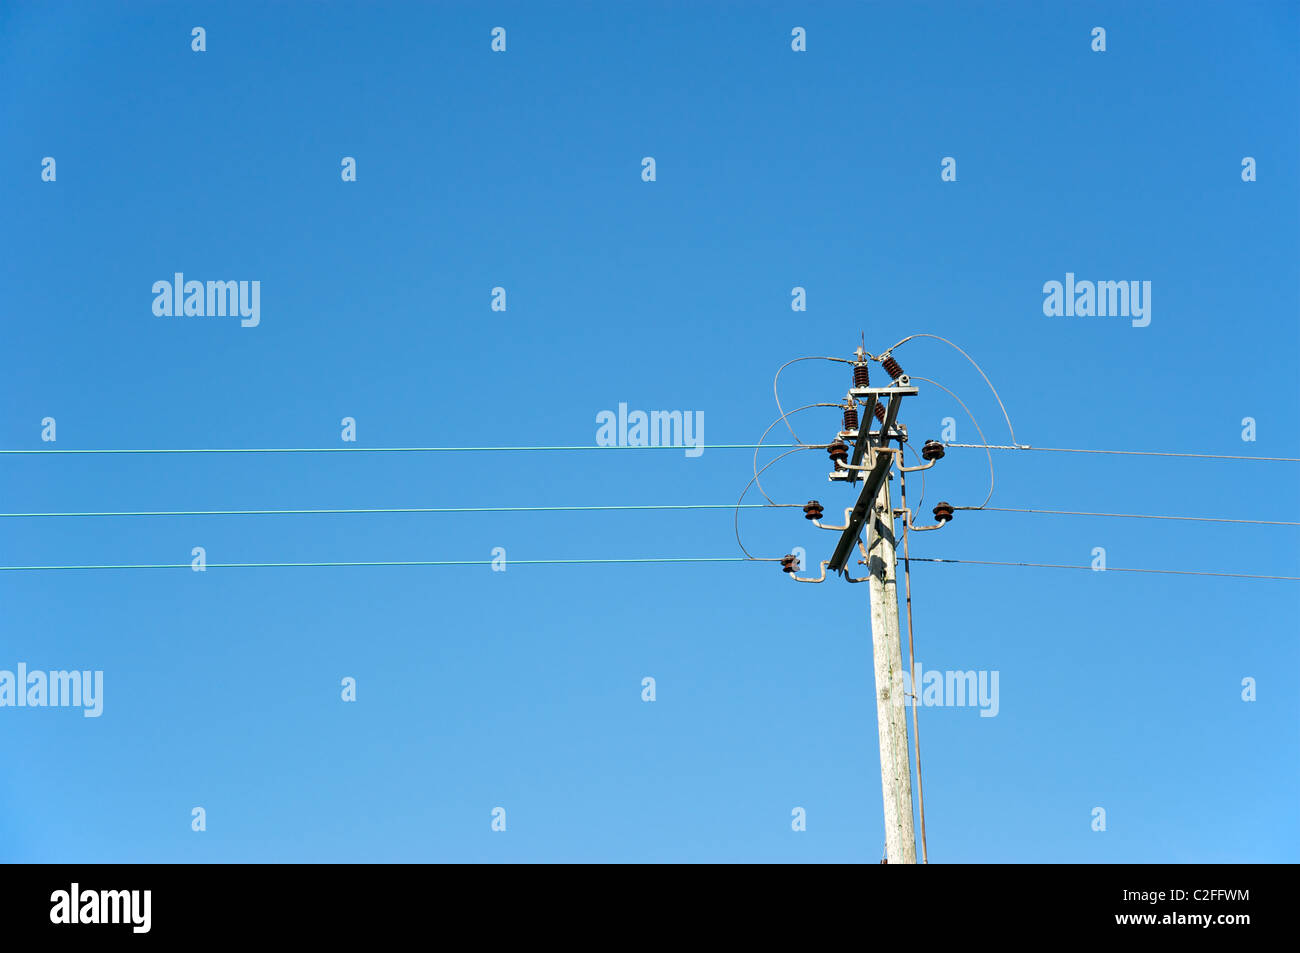 Electical power cables against a blue sky, Worcestershire, England, UK Stock Photo